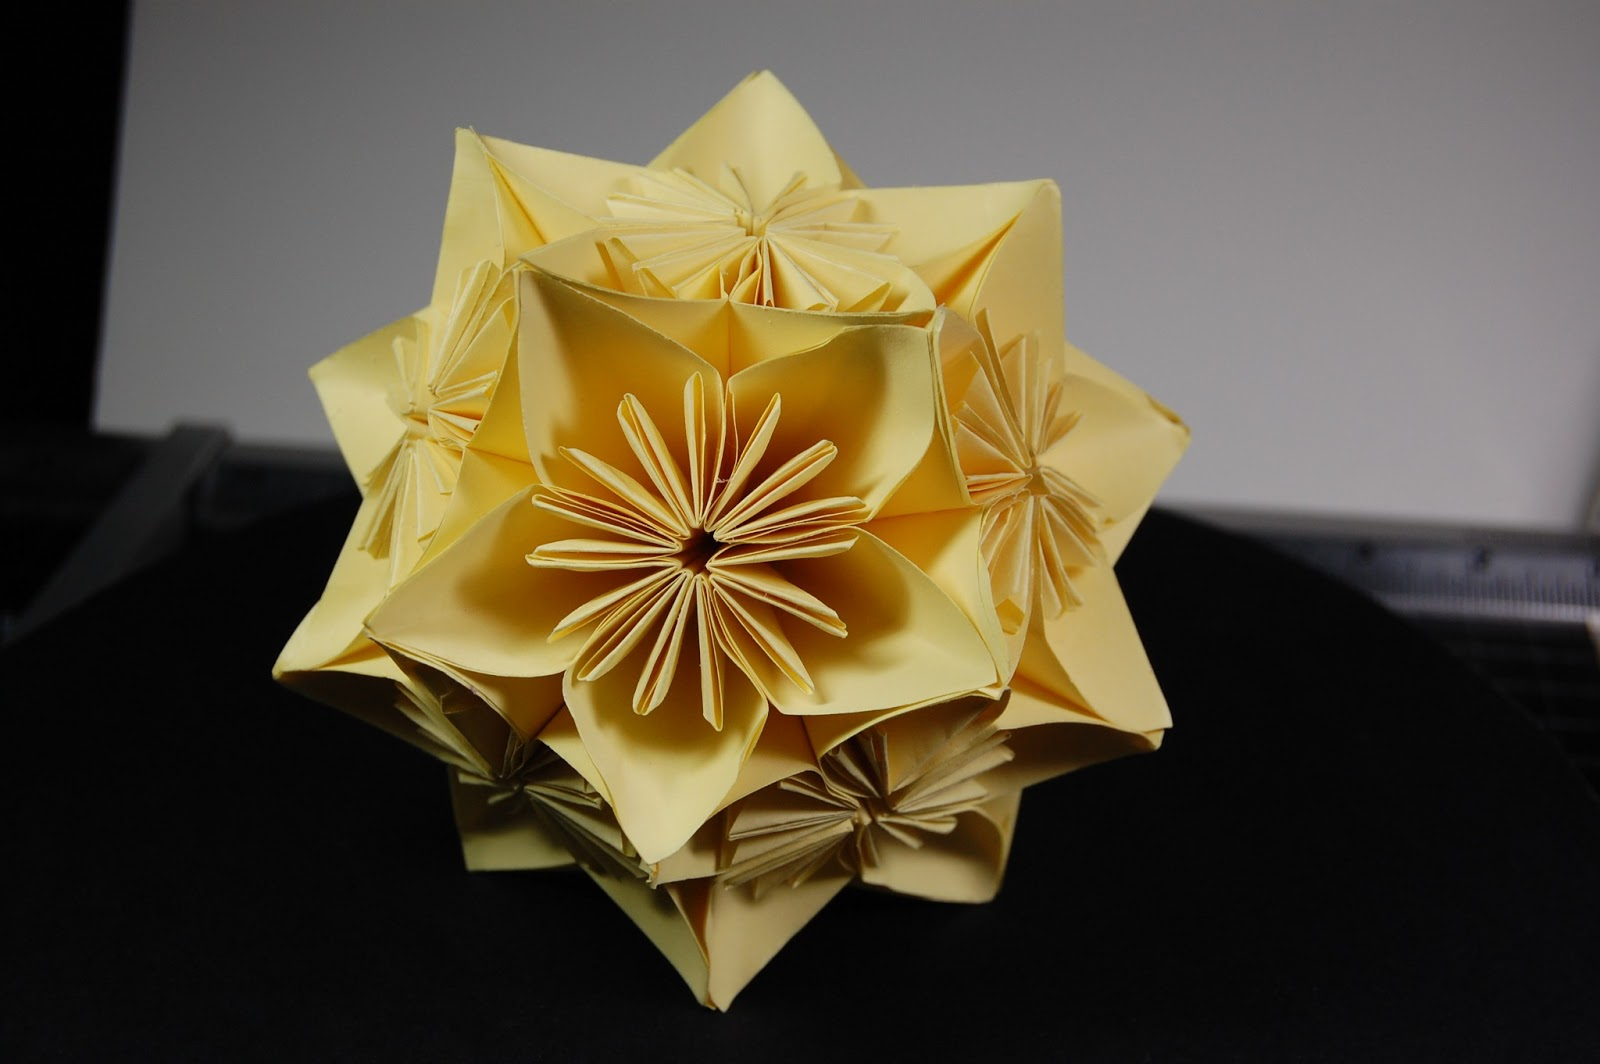 Sigis wild tails and creations kusudama origami flower ball if you keep the tips nicely together you will have no trouble finishing a tidy ball mightylinksfo